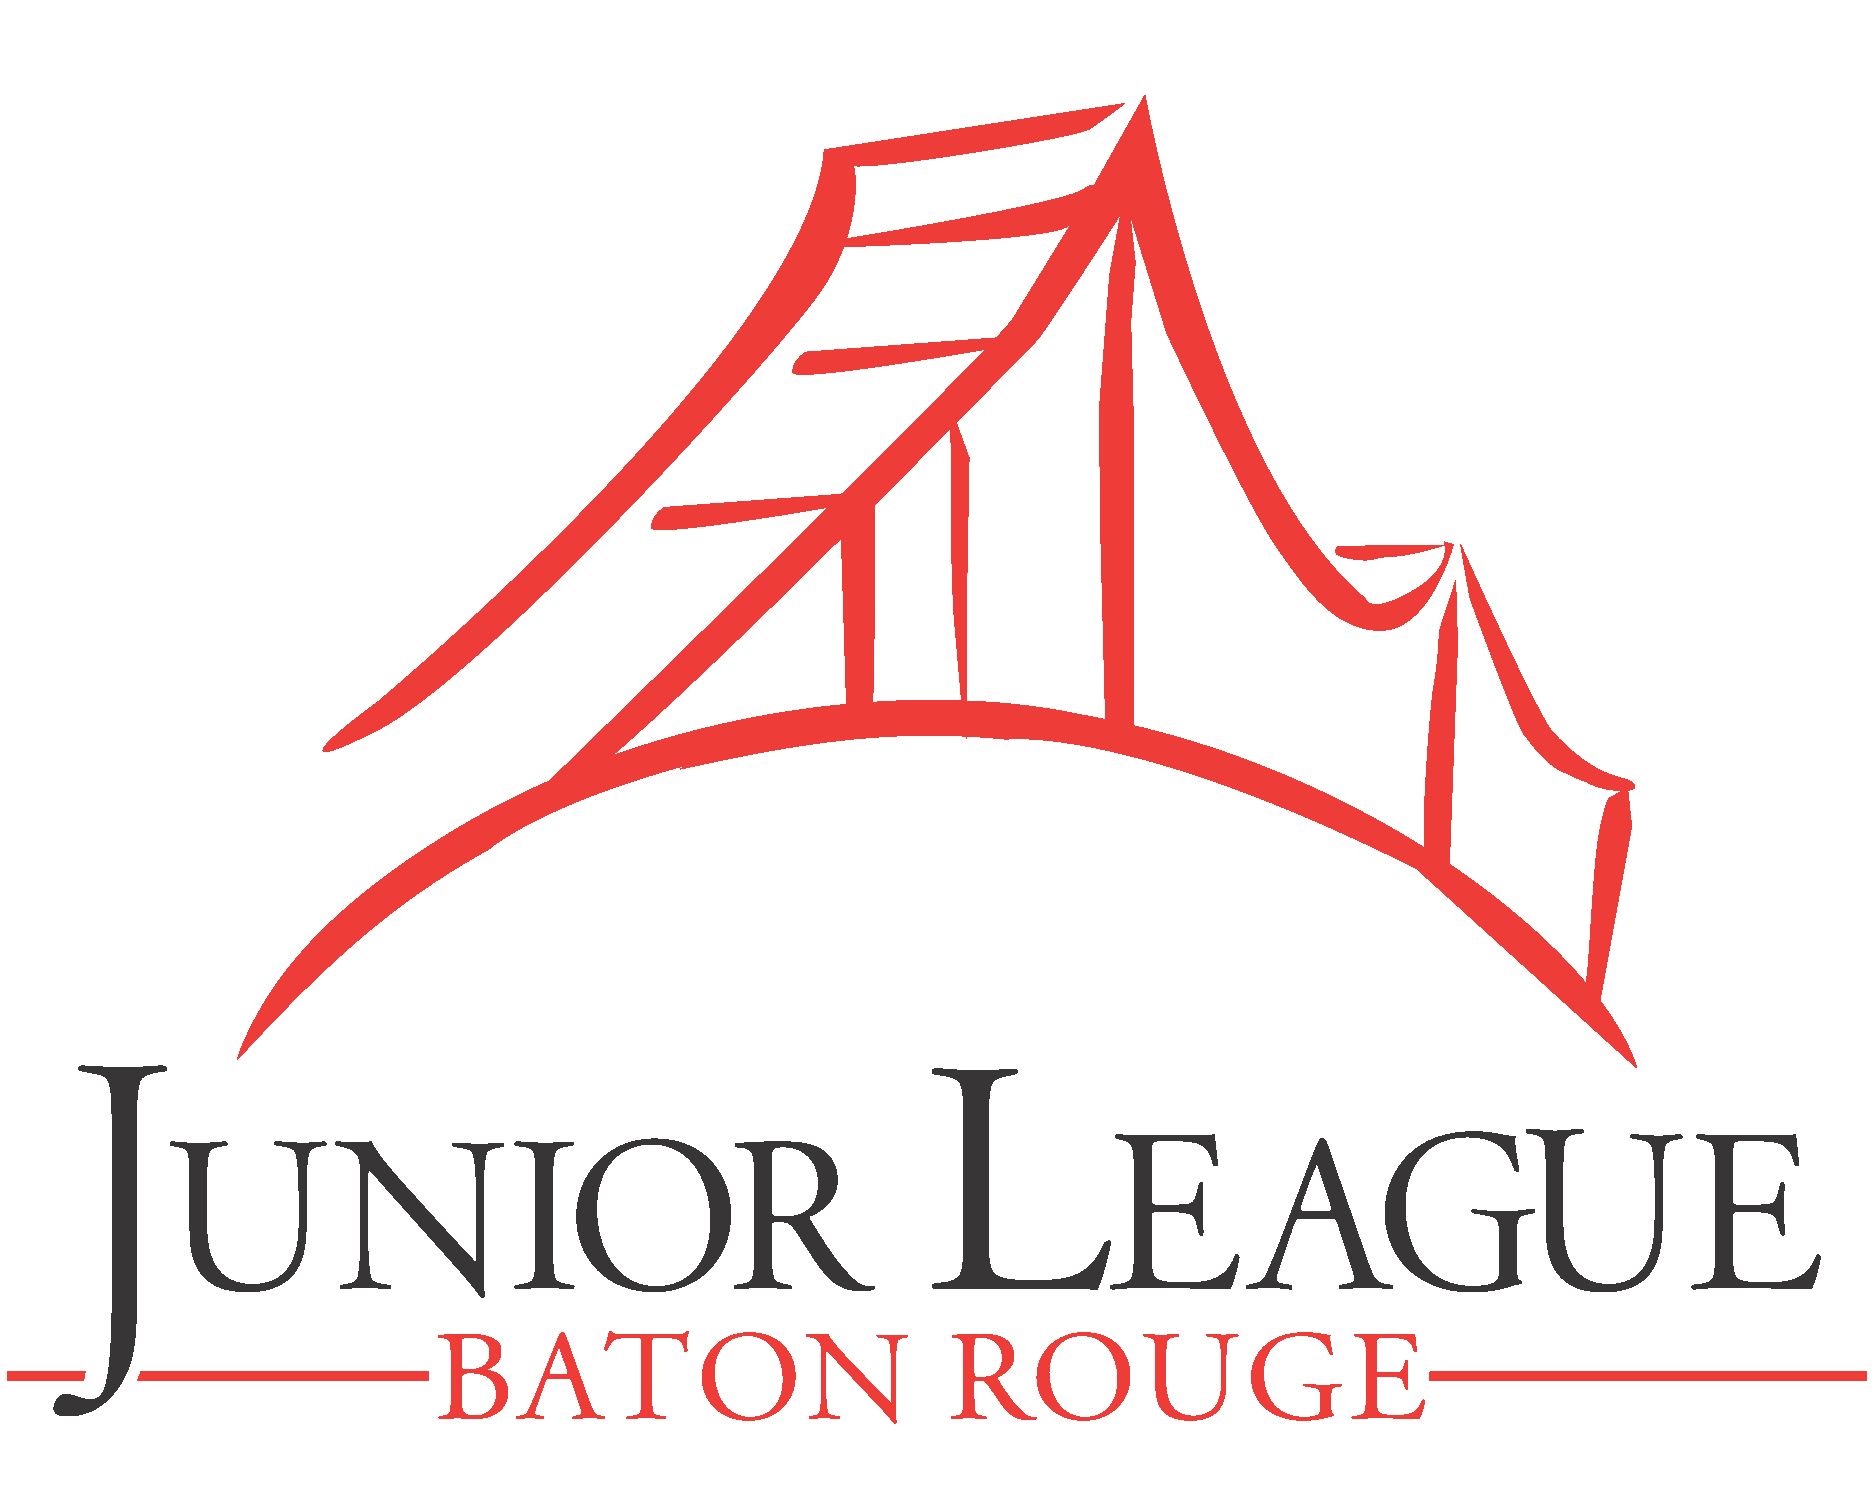 Junior League of Baton Rouge